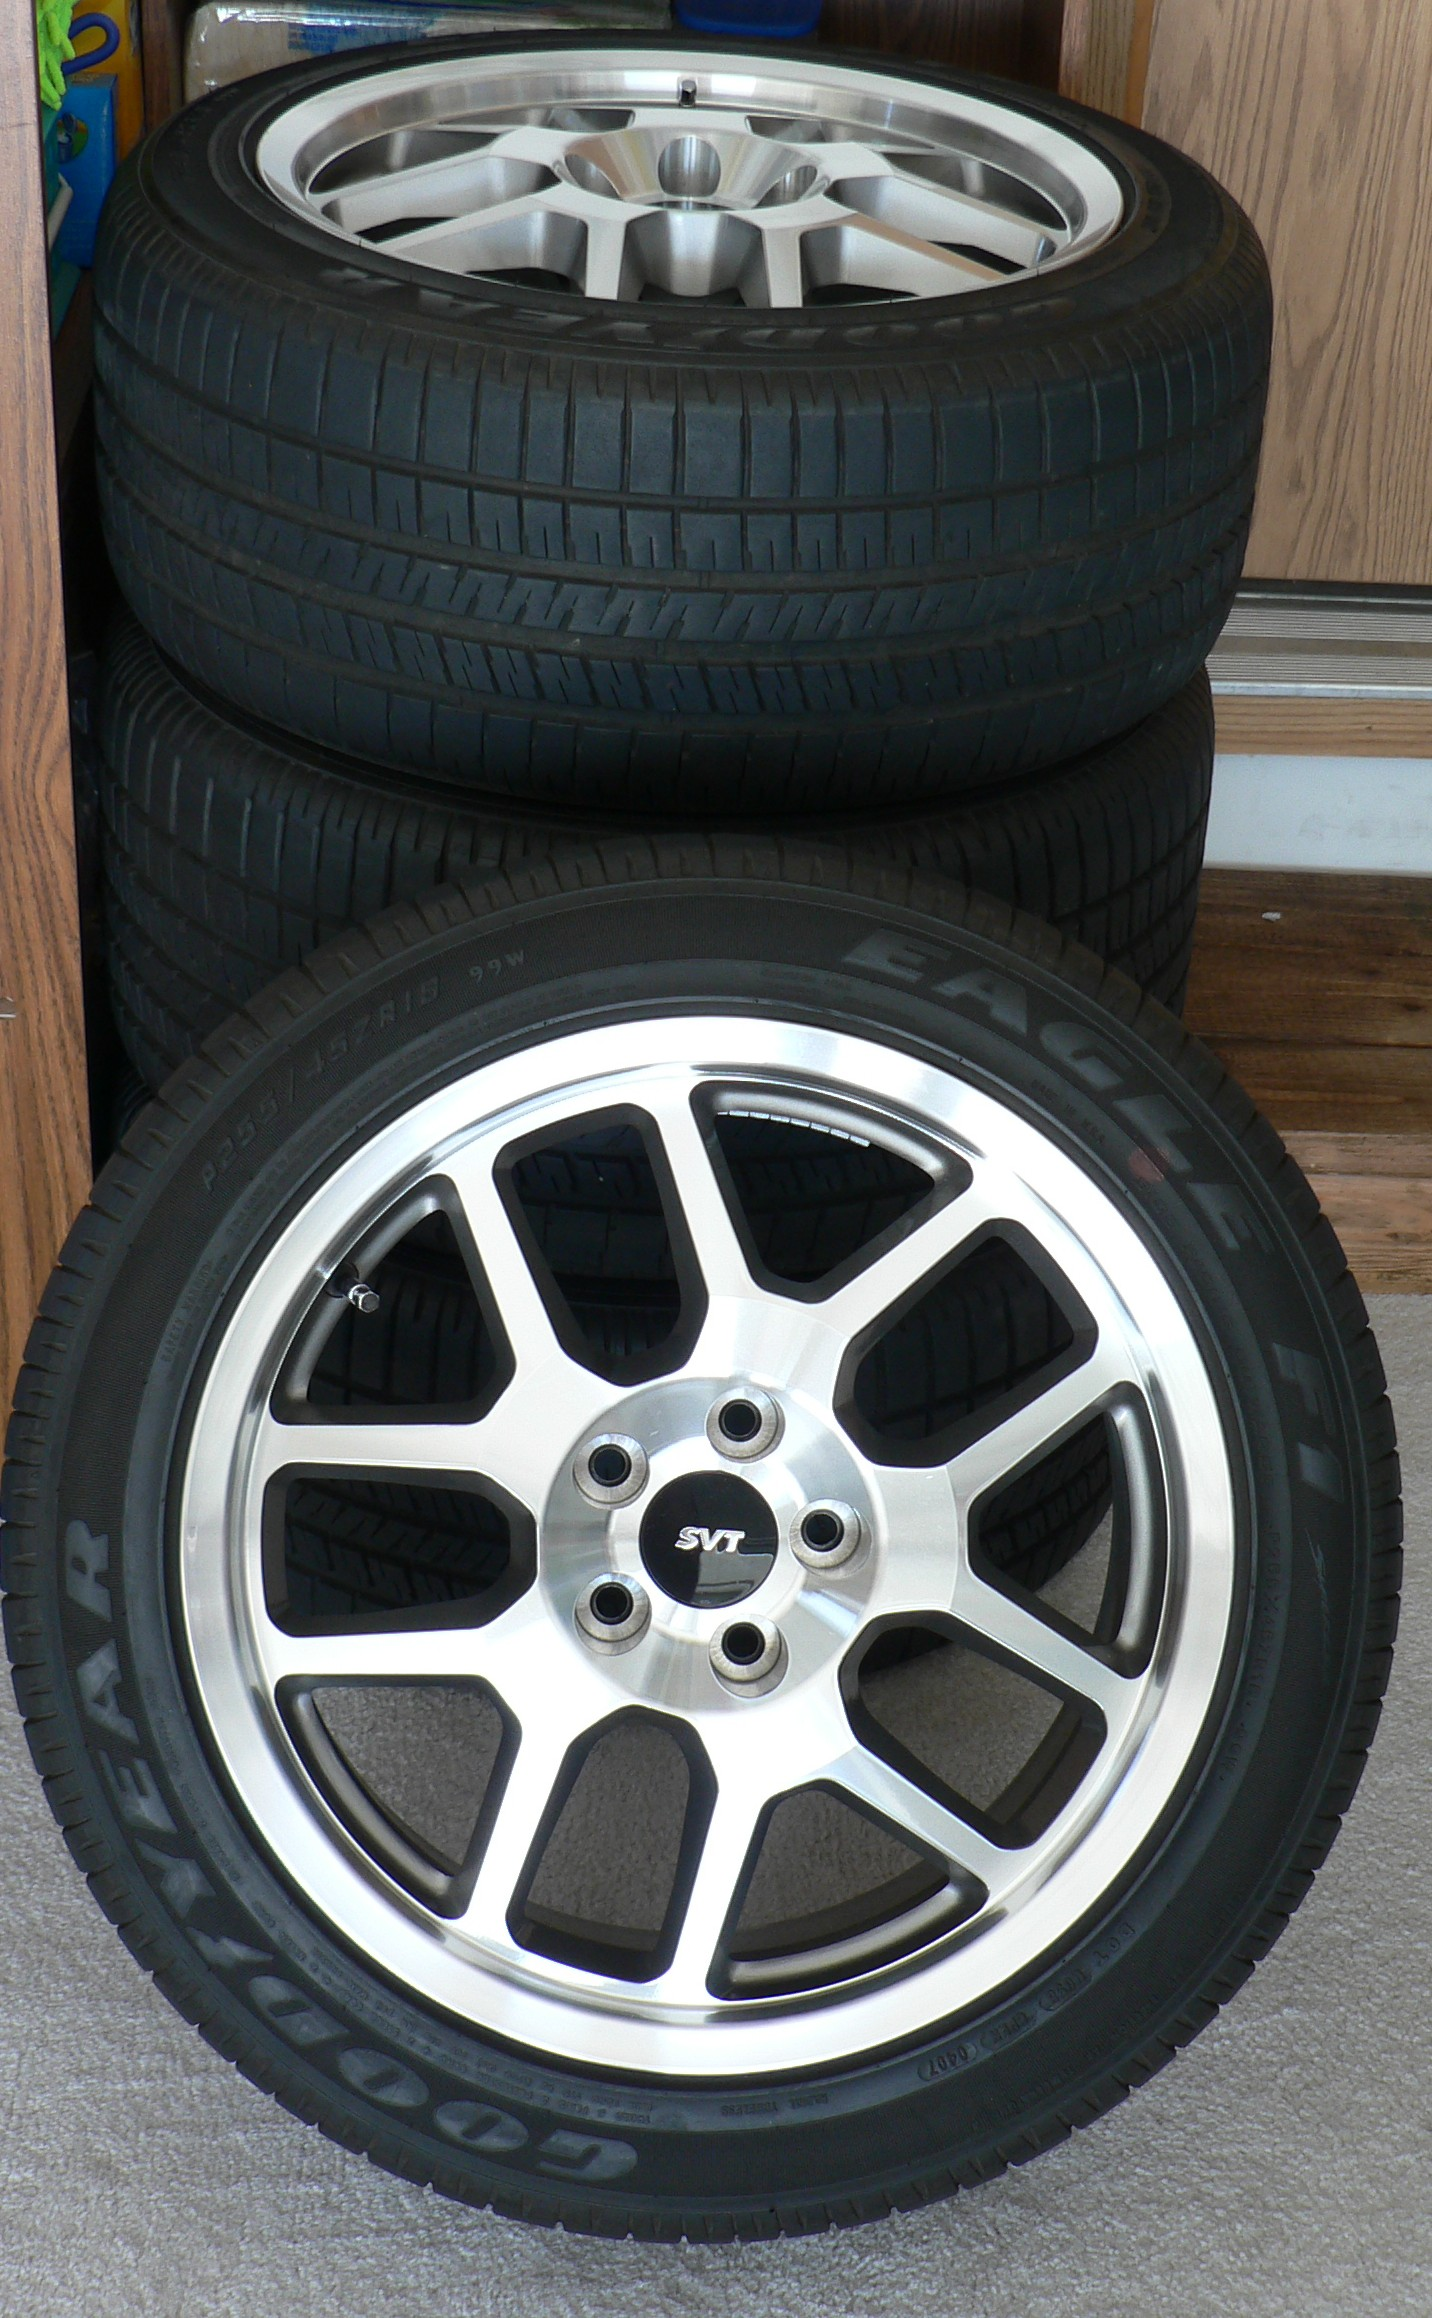 Click image for larger version  Name:Tire stack.JPG Views:374 Size:672.8 KB ID:45519